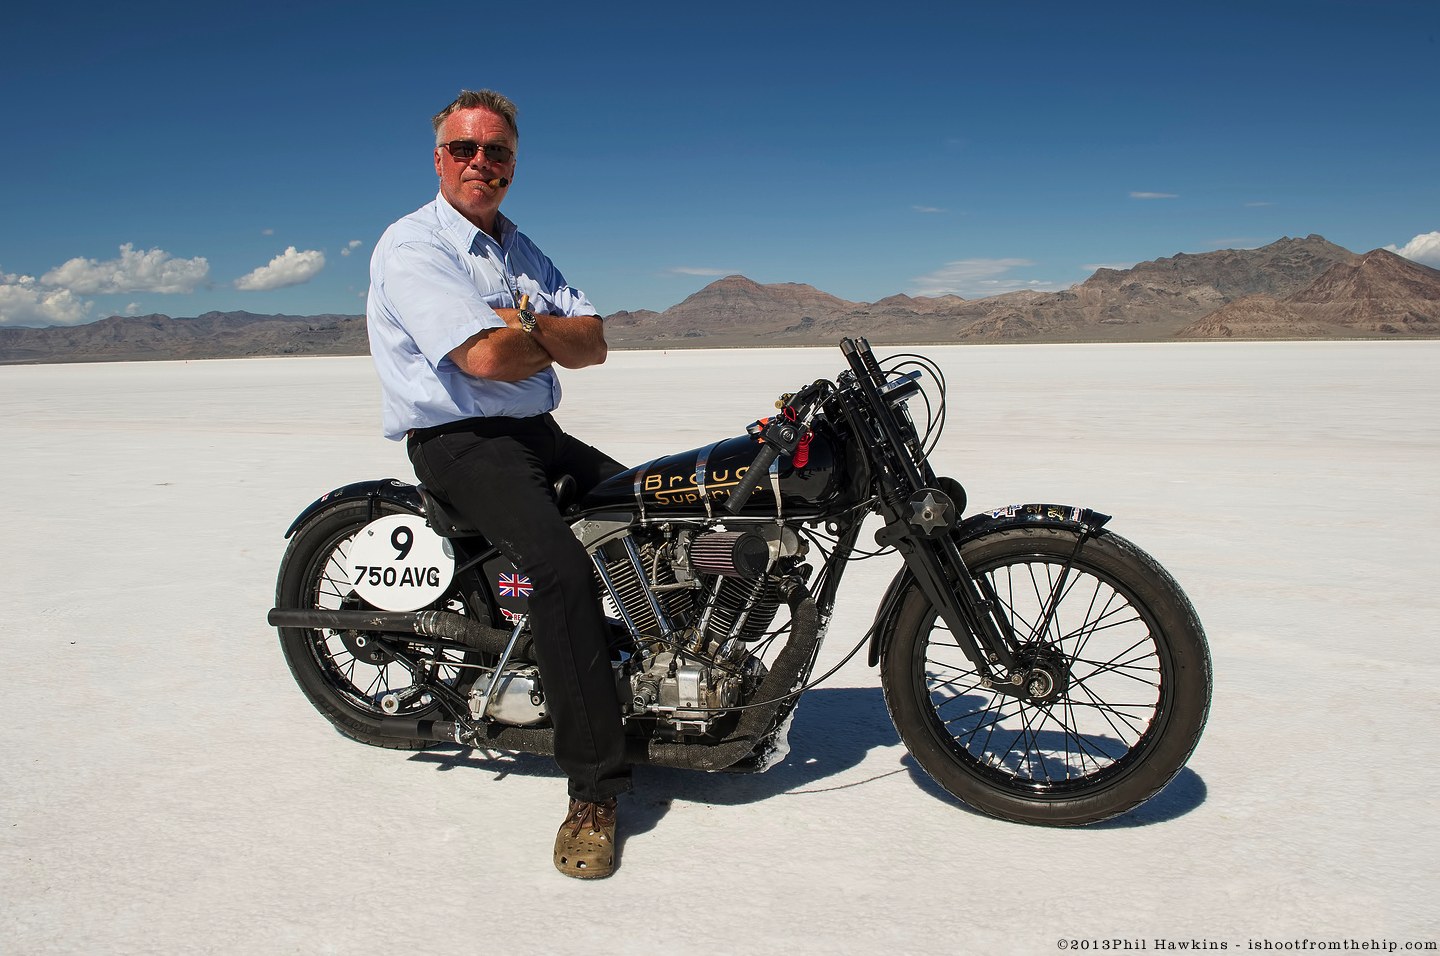 (01ー50)||tvn.hu nude imagesize:1440x956 28 ) Ridden by famed motorcycle journalist Alan Cathcart the first run was very  much a shake down run at 97.260 mph over the flying mile.